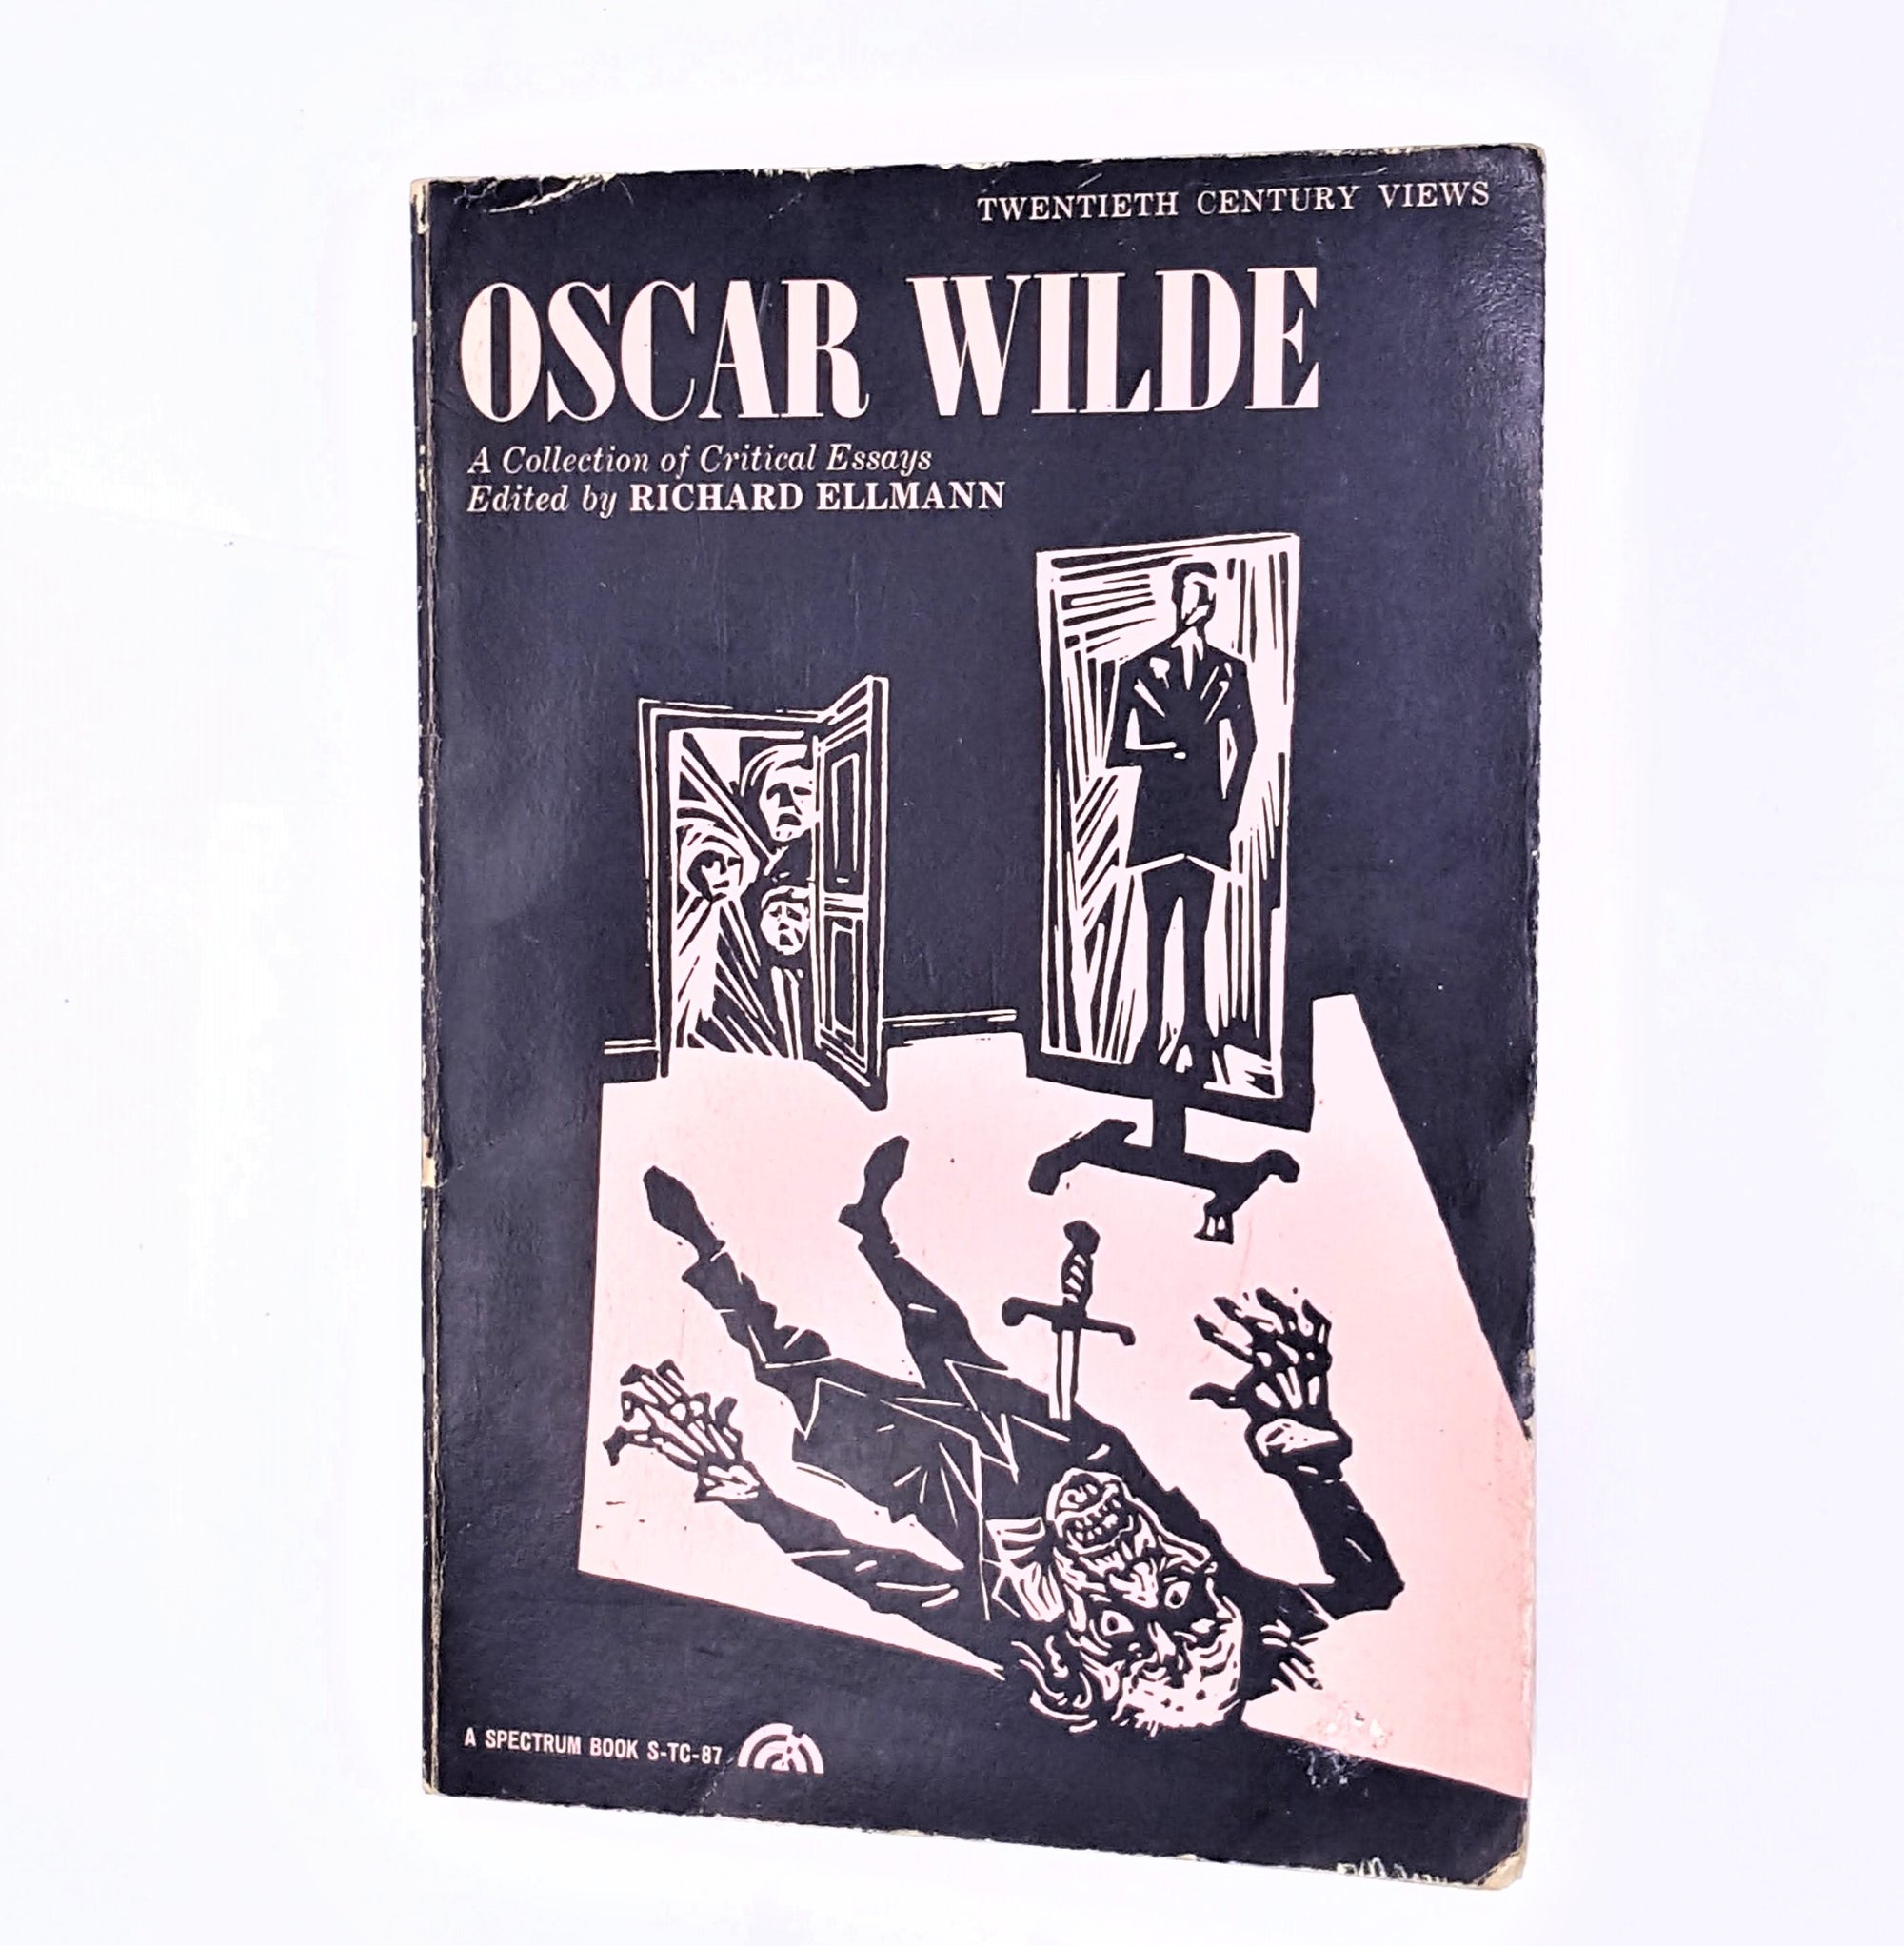 Oscar Wilde - A Collection of Critical Essays 1969